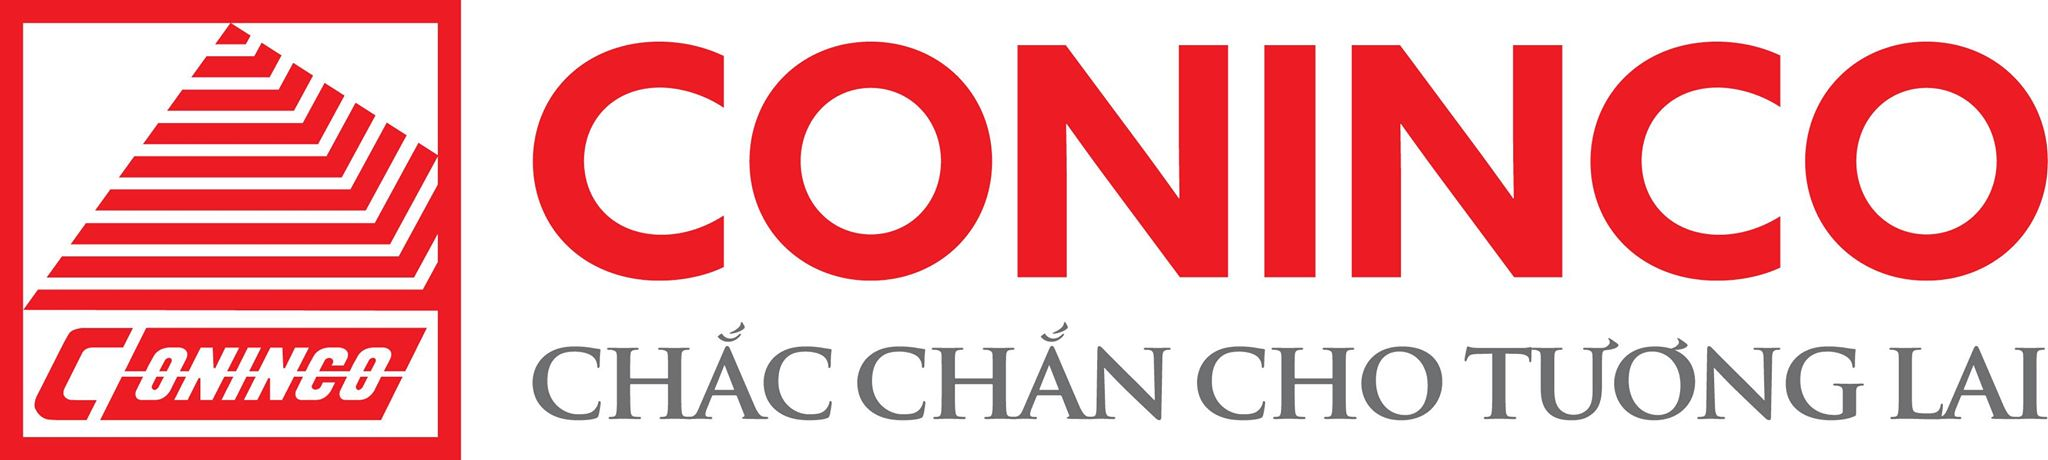 LOGO SLOGAN CONINCO